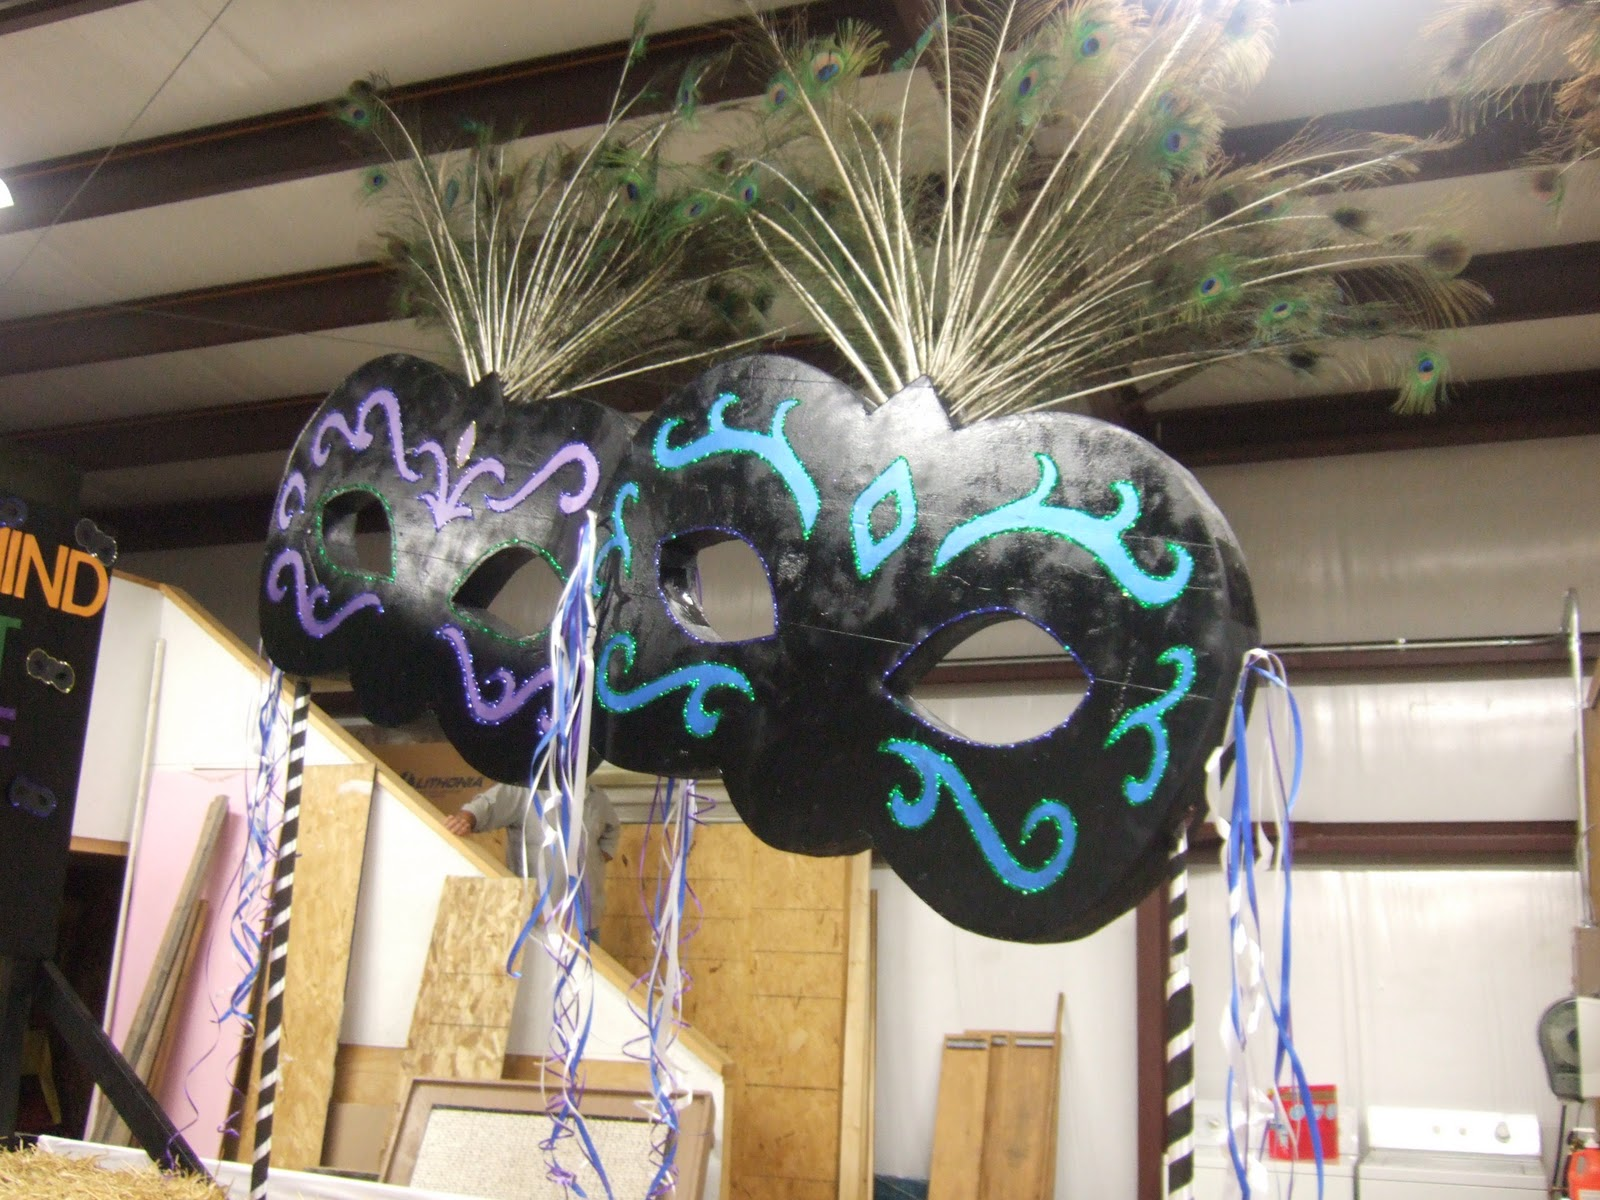 Giant Masquerade Masks For Party Decorations & Mask Party Decoration Ideas - Elitflat